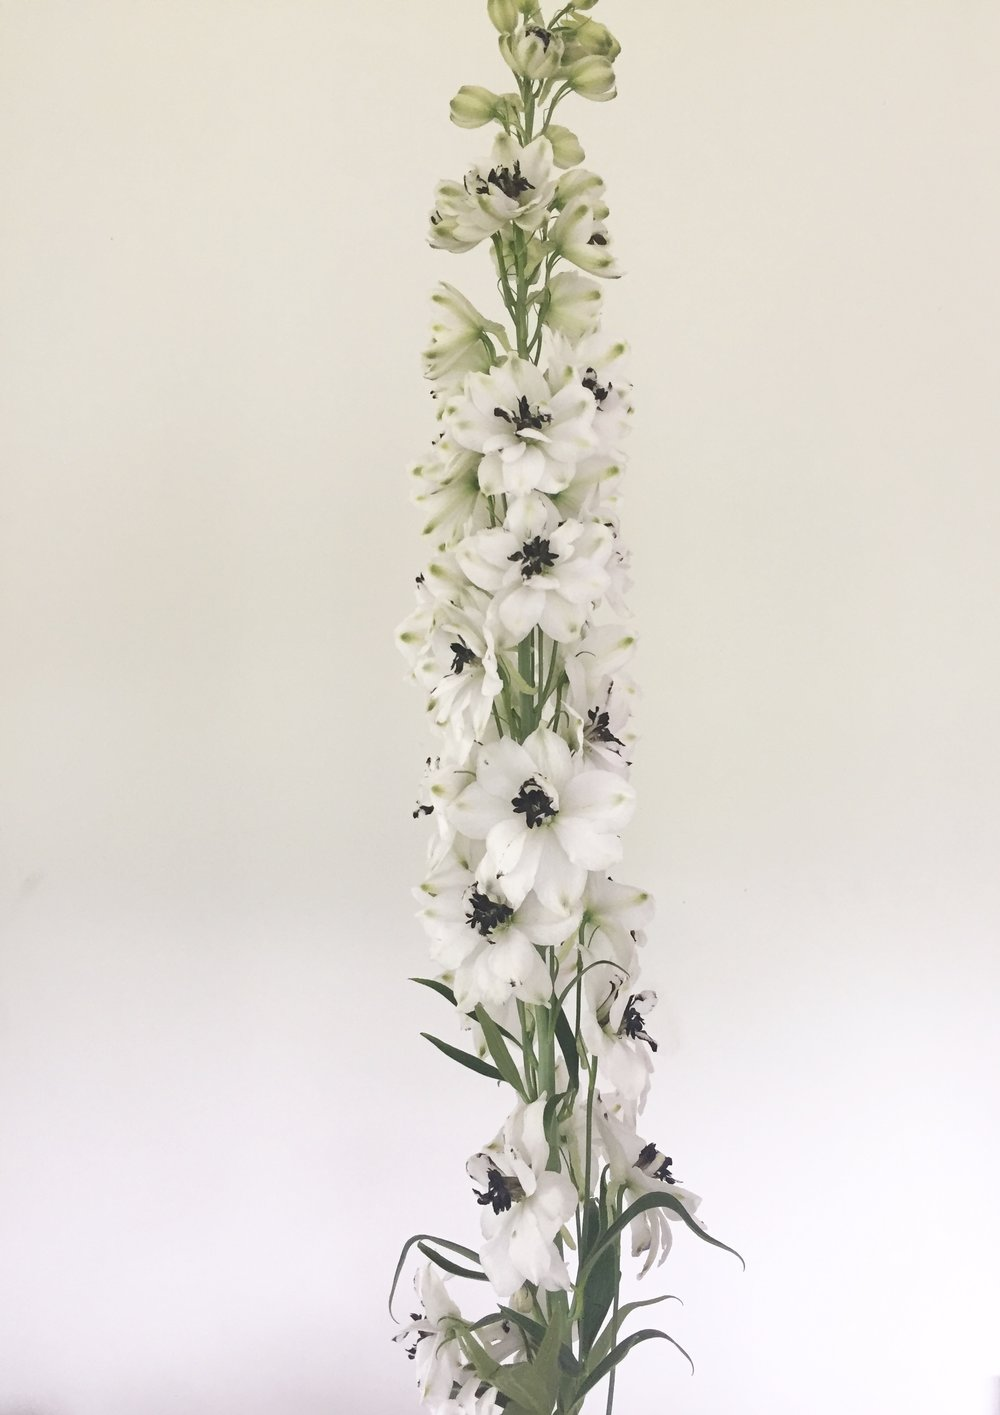 Delphinium cultorum - white w/ dark bee